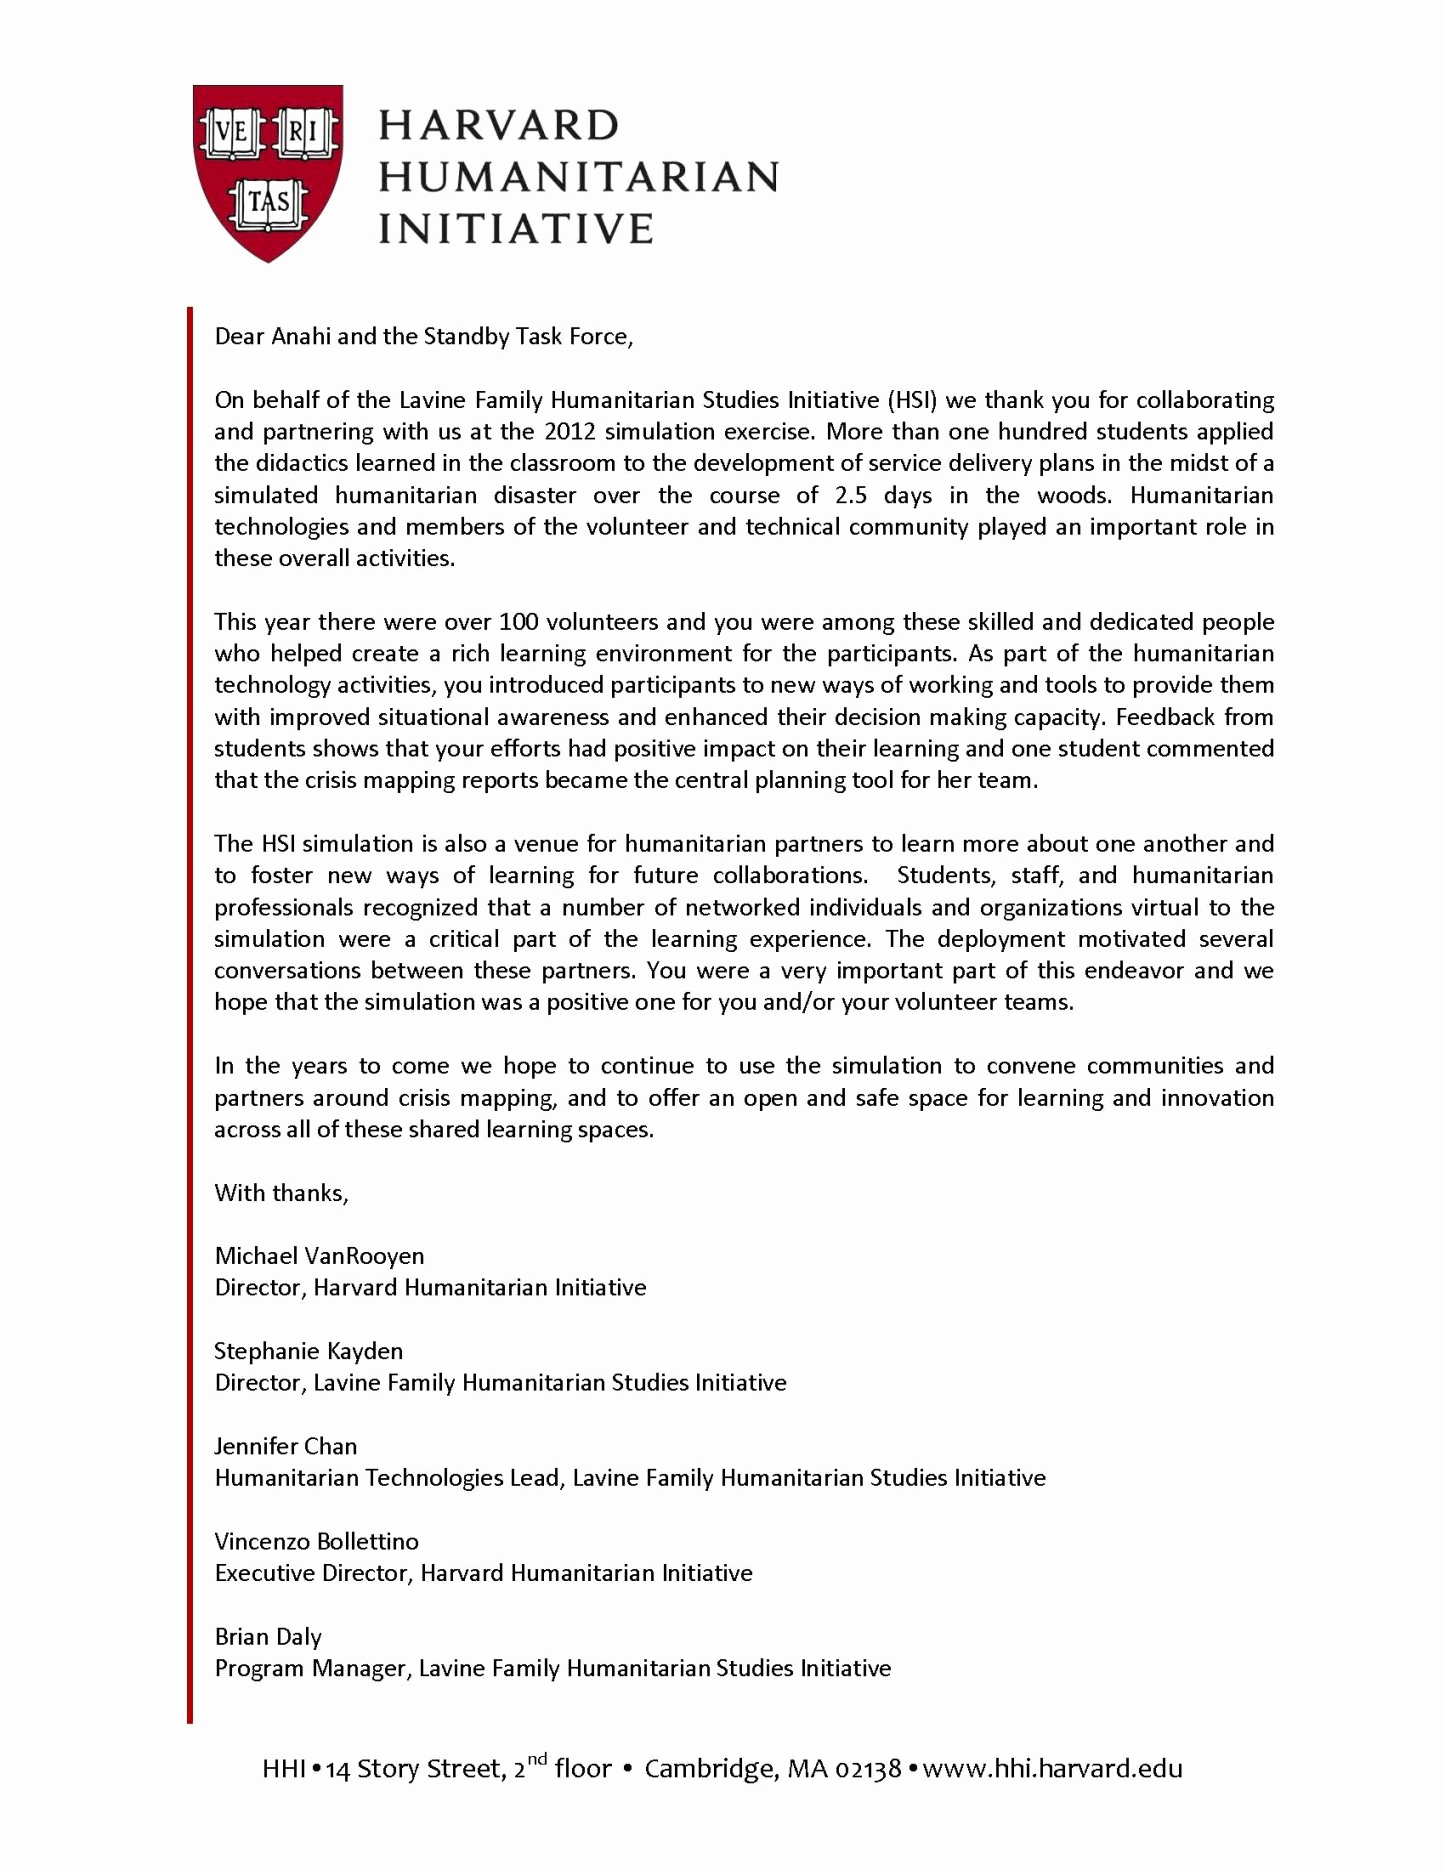 harvard ocs resume template Collection-Ocs Resume Template Inspiration Harvard Style Resume Example In Ocs Cover Letter Ideas 2-p